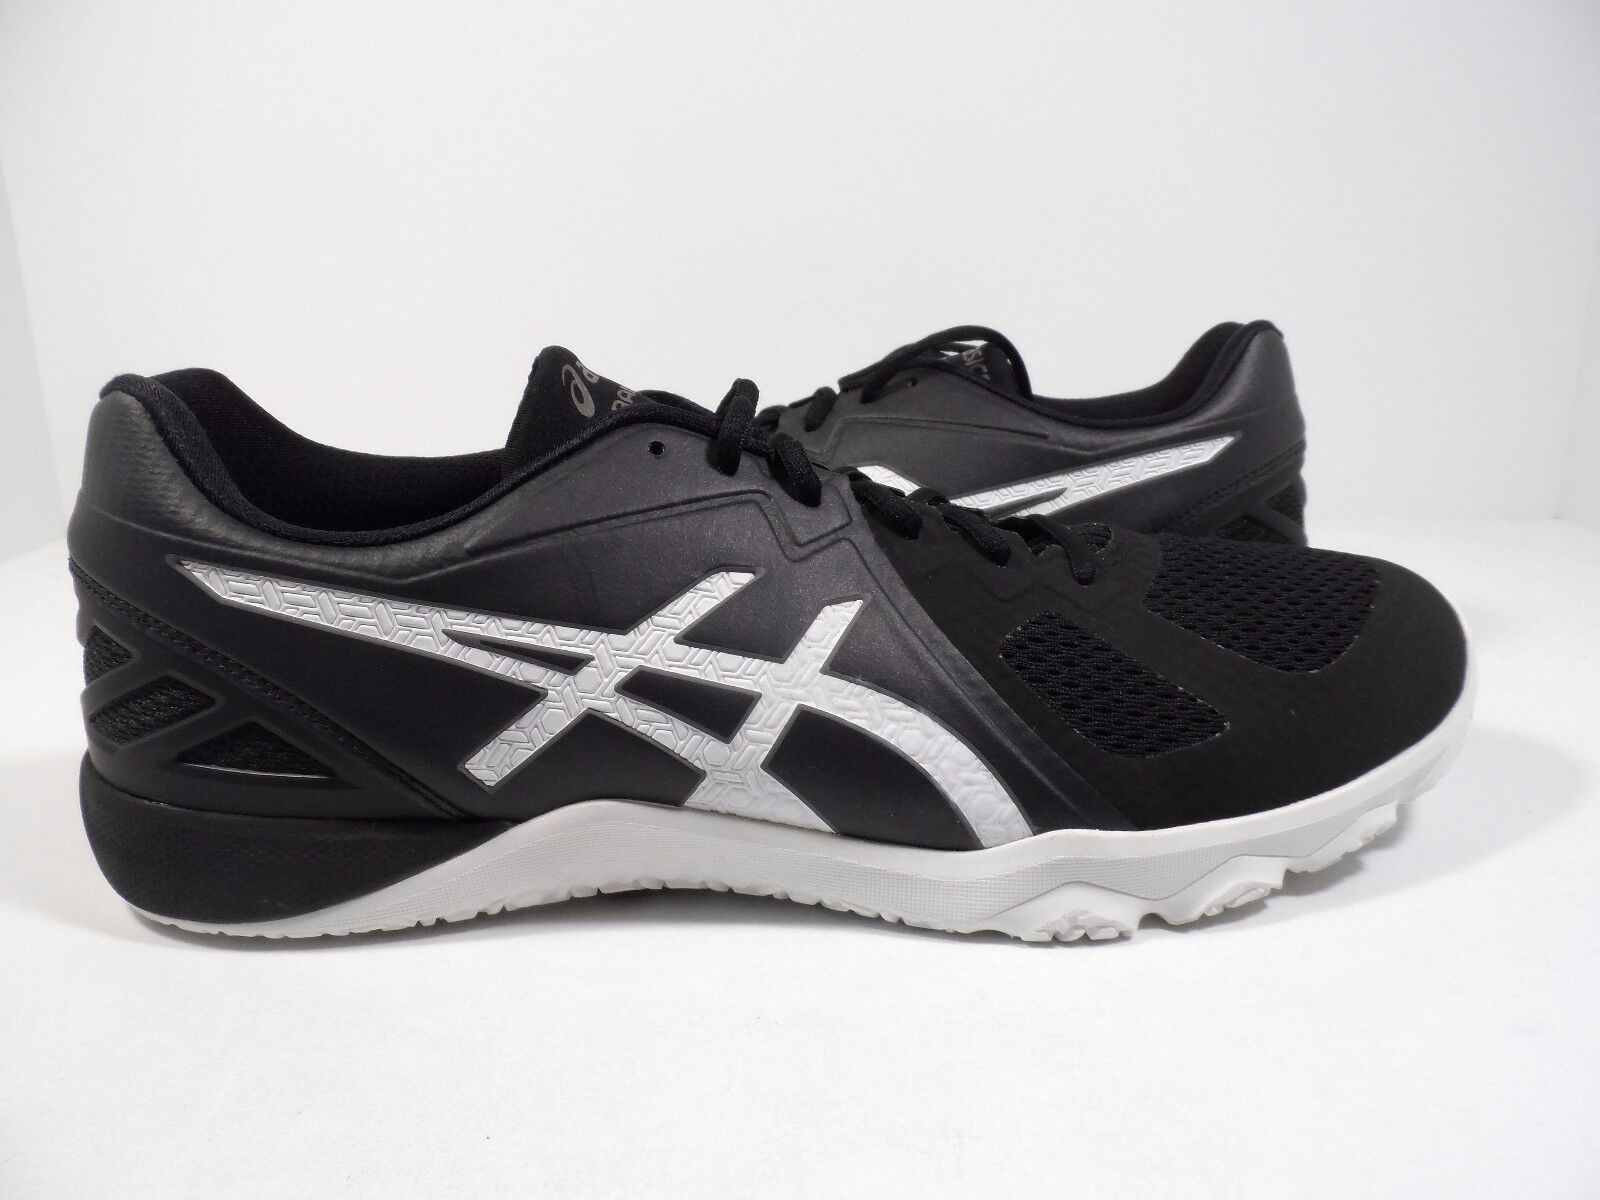 ASICS Men's Conviction X Cross-Trainer shoes Black White white Size 7